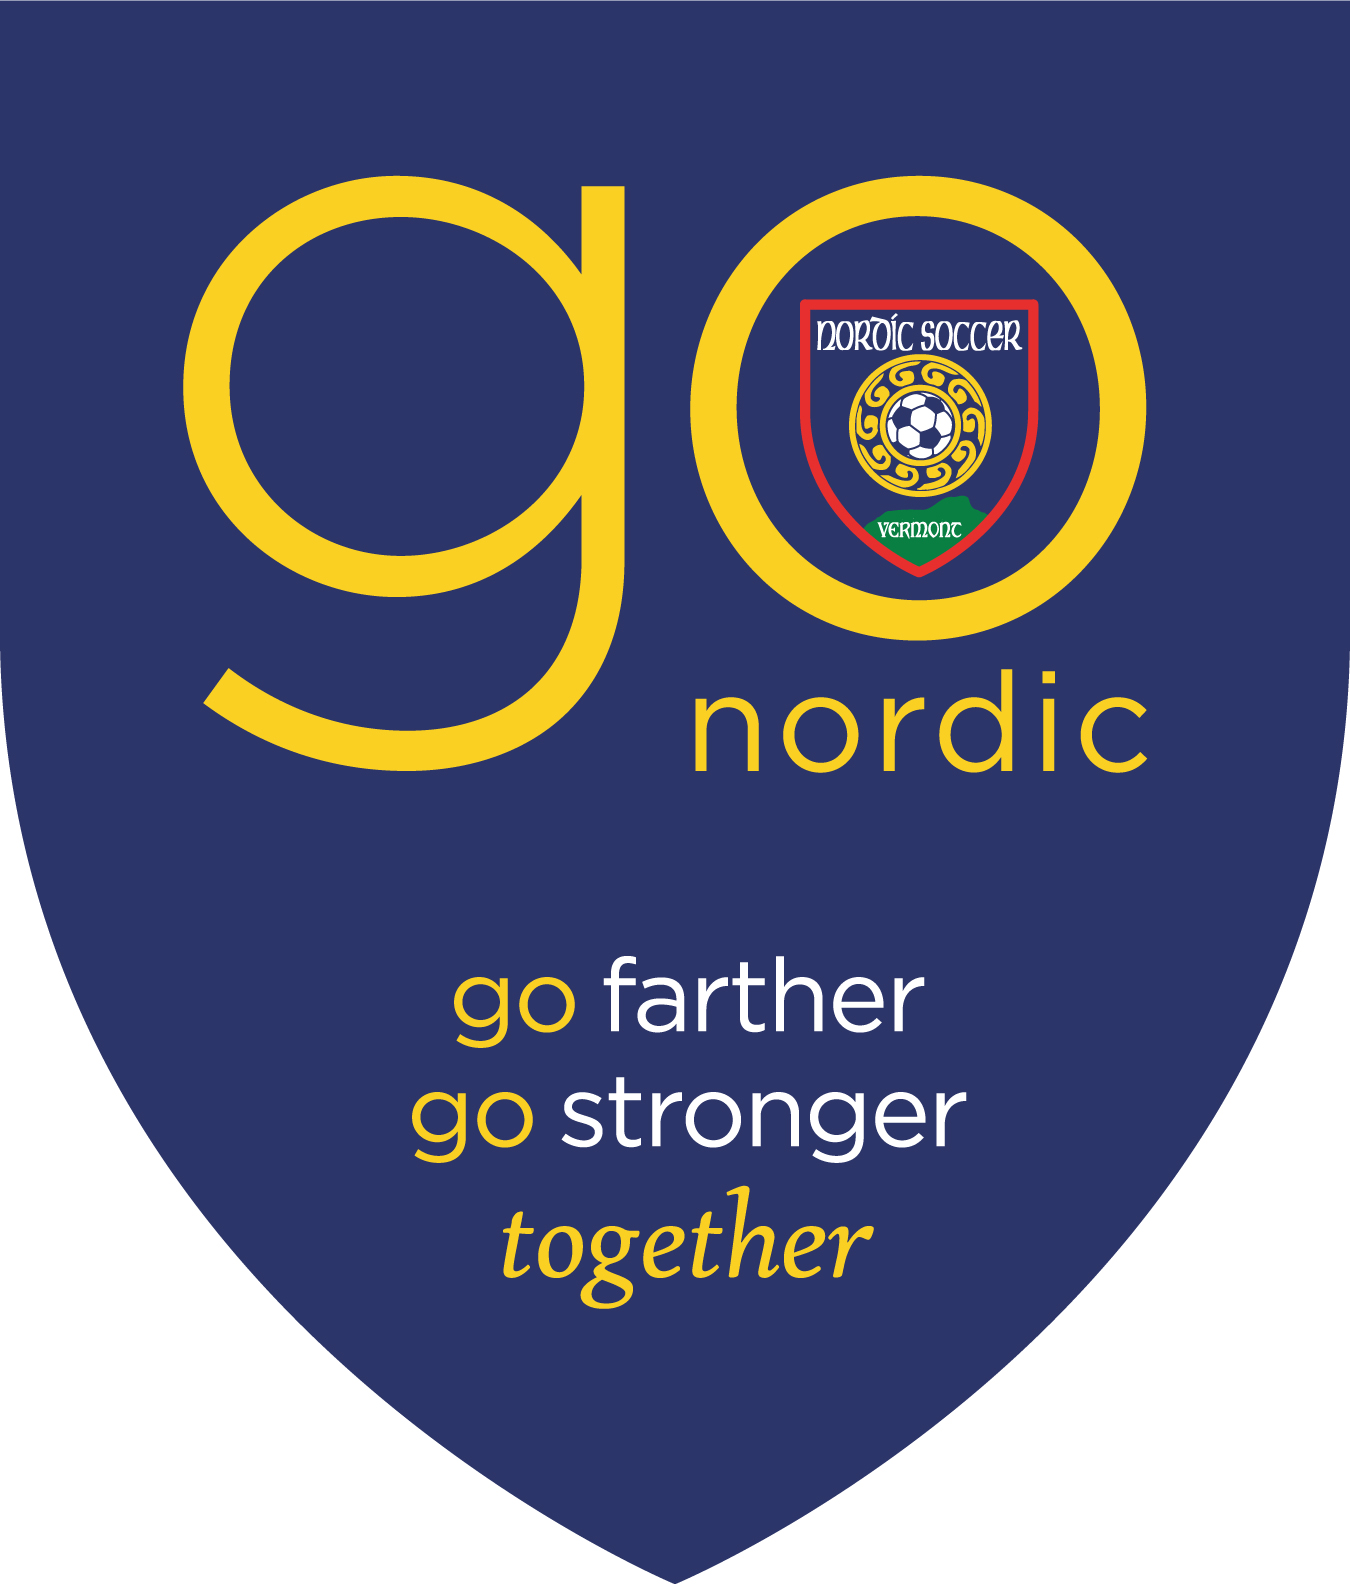 Go Nordic is a unique and innovative program focused on whole body gender wellness for our female athletes